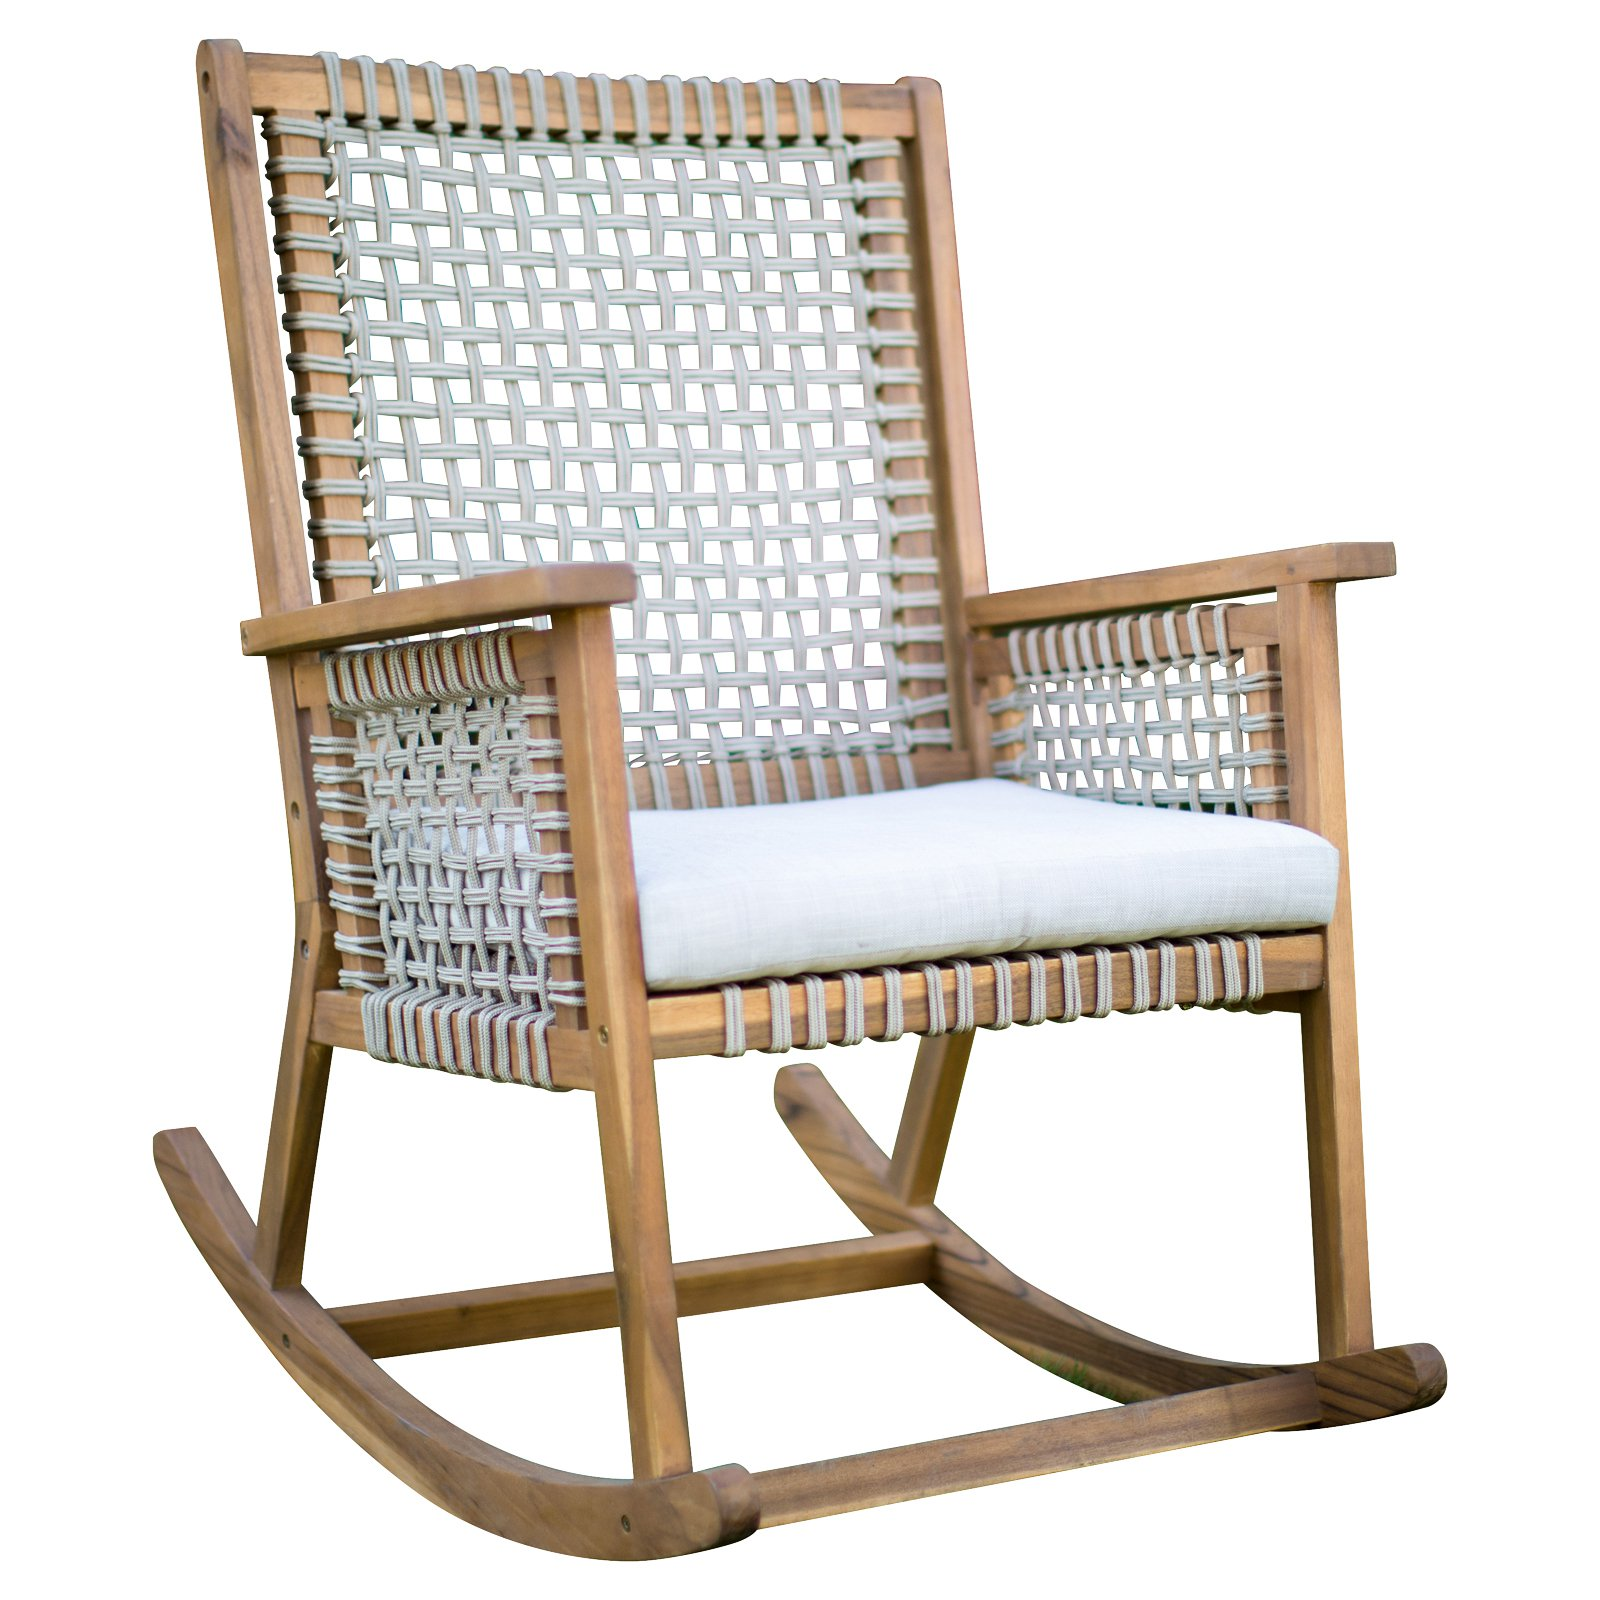 Cheap Rocking Chairs Belham Living Raeburn Rope And Wood Outdoor Rocking Chair